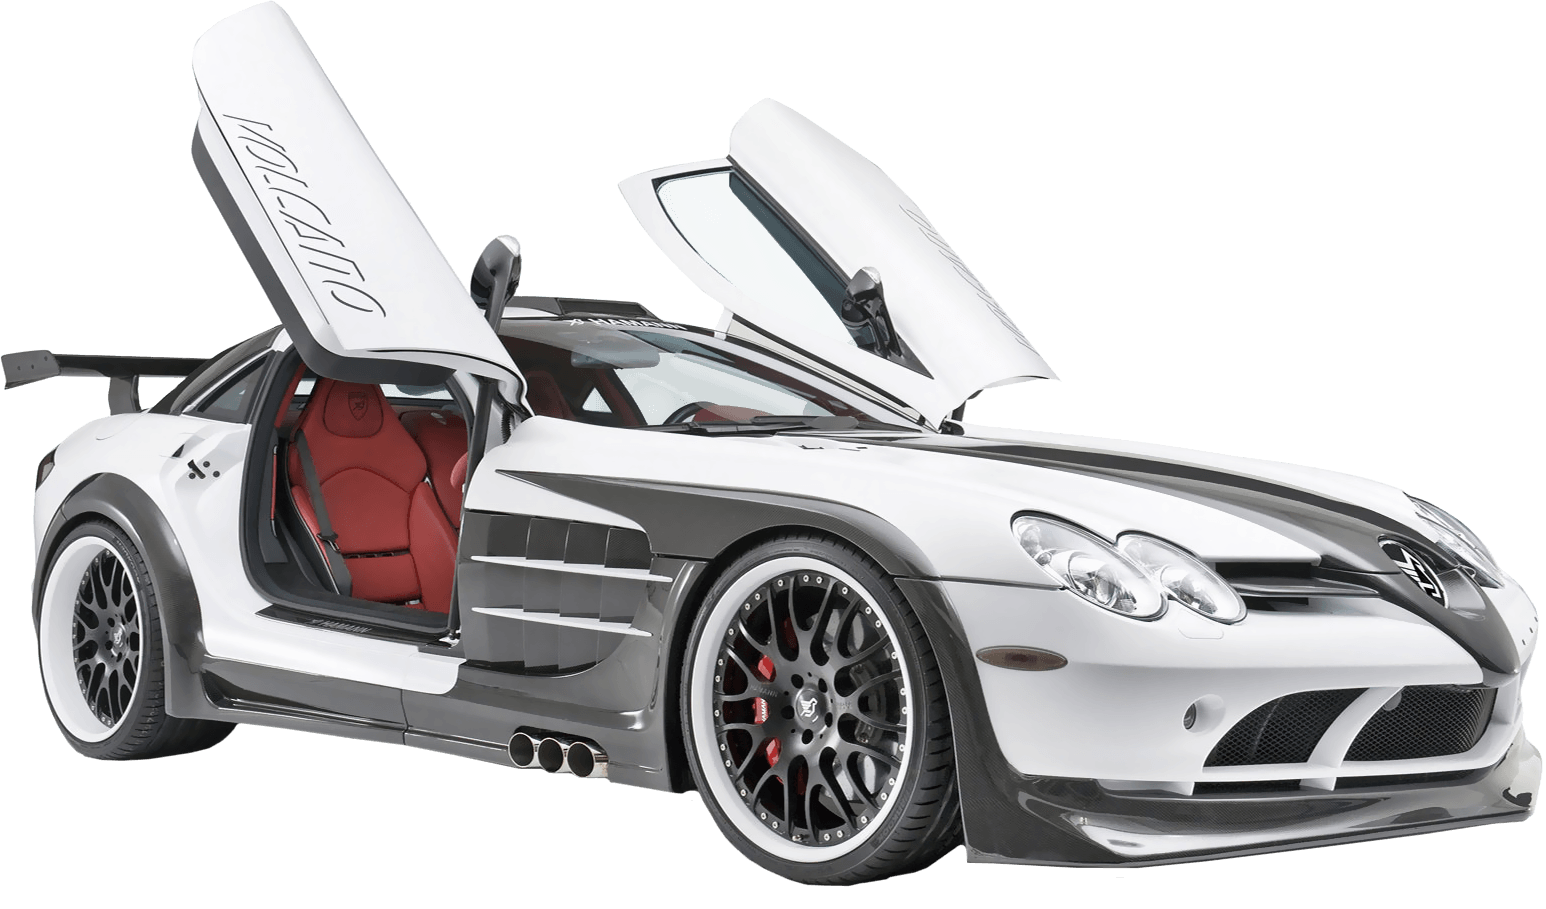 Mercedes Amg Sideview PNG Image